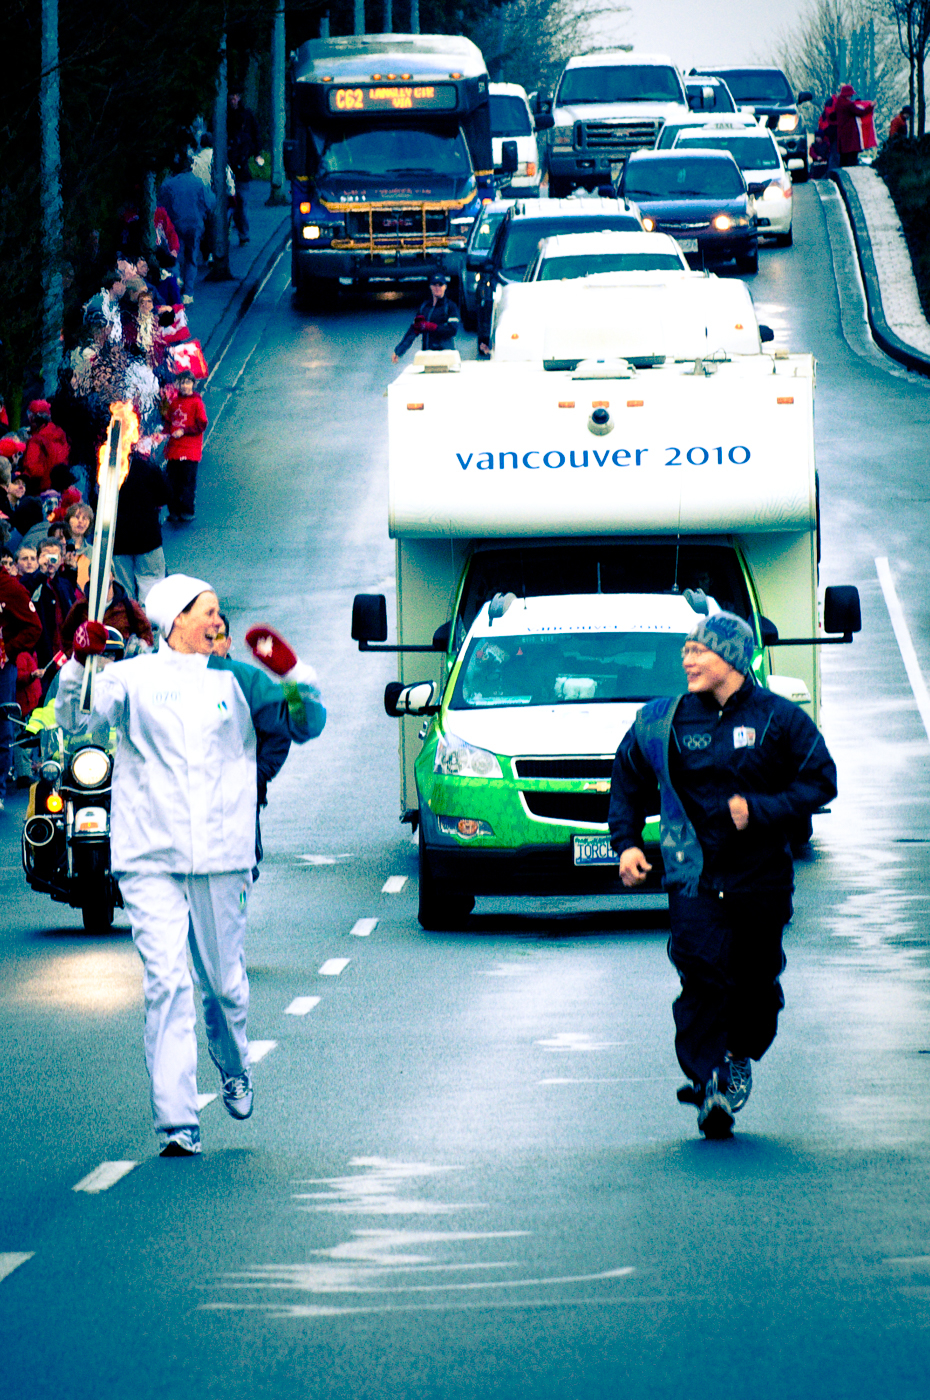 2010 Olympic Torch Relay, Day 102